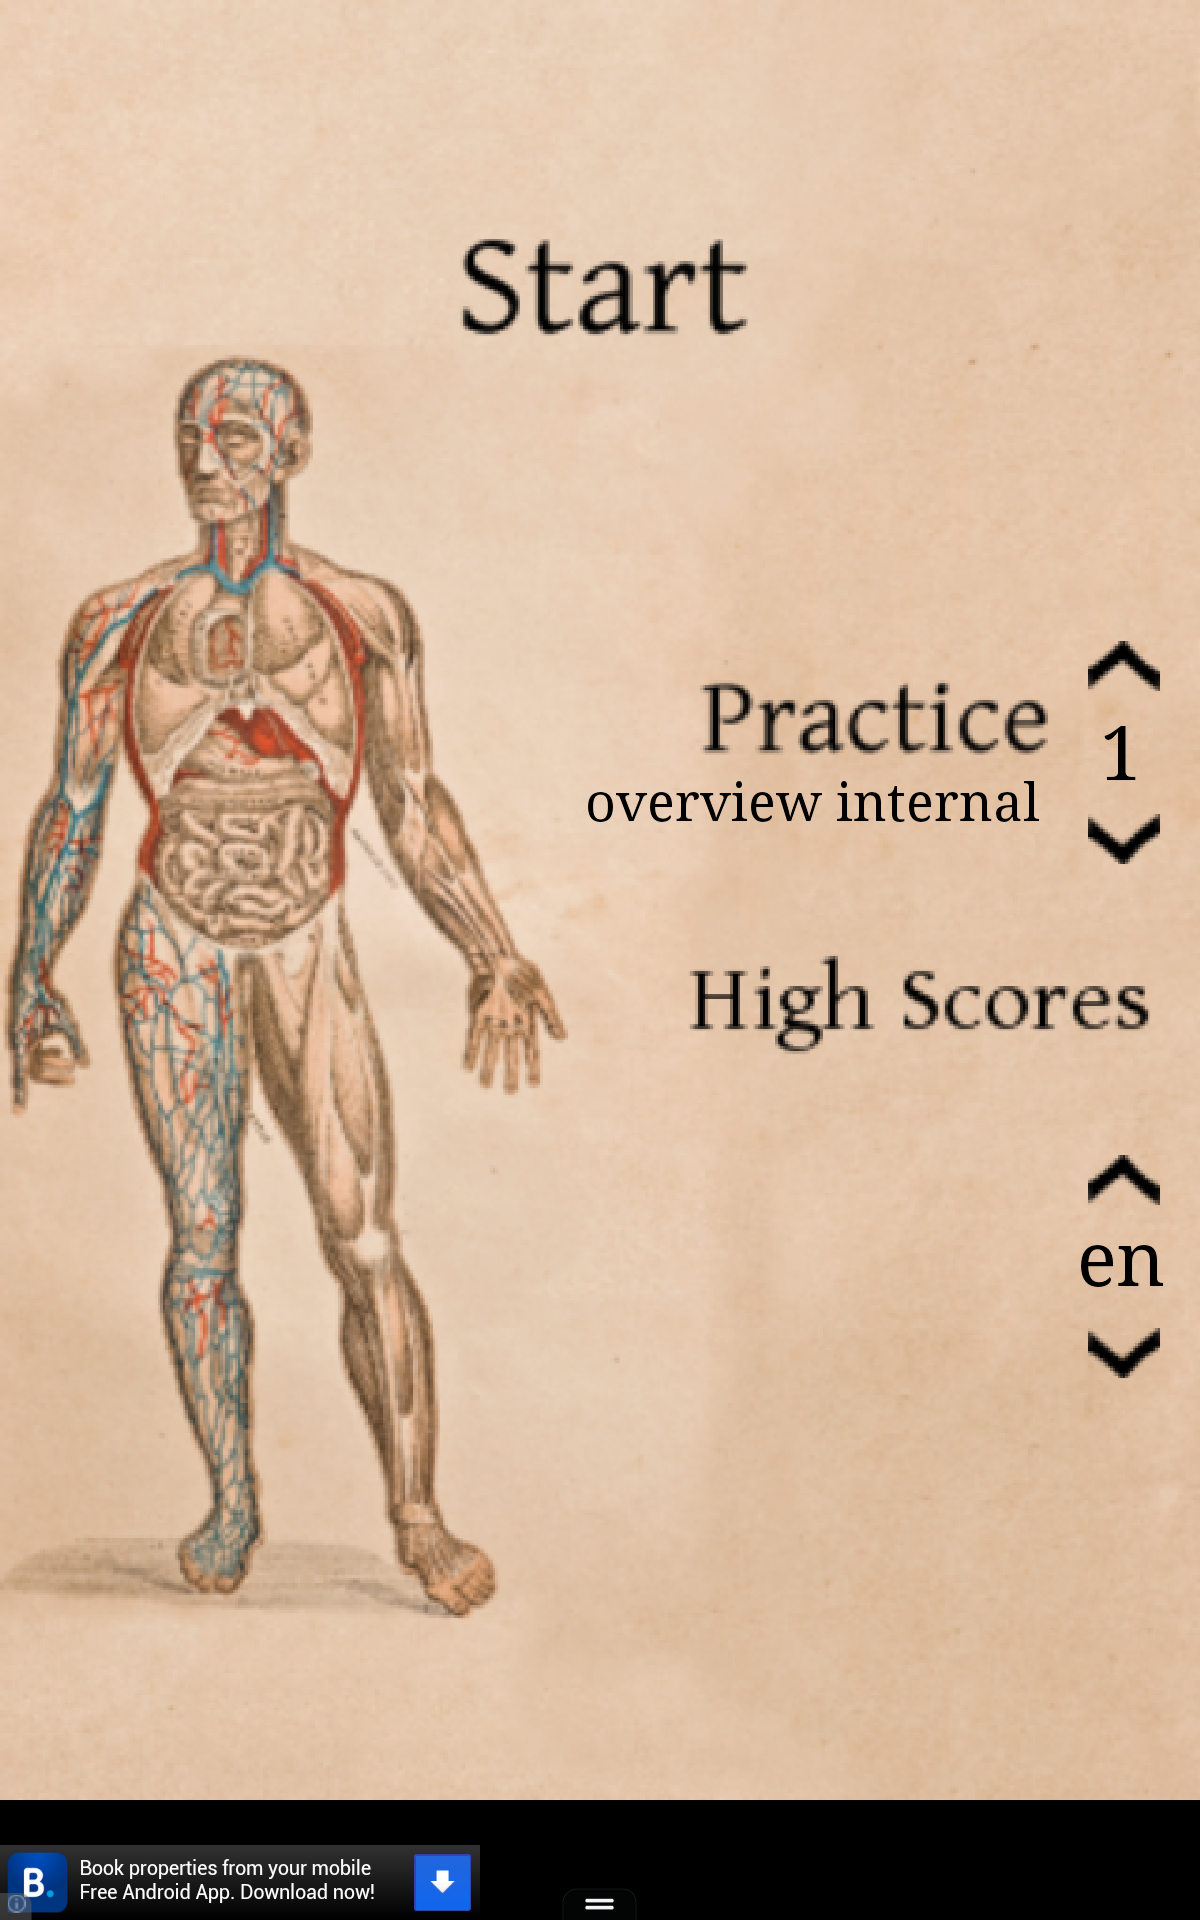 Amazon.com: Speed Anatomy: Appstore for Android